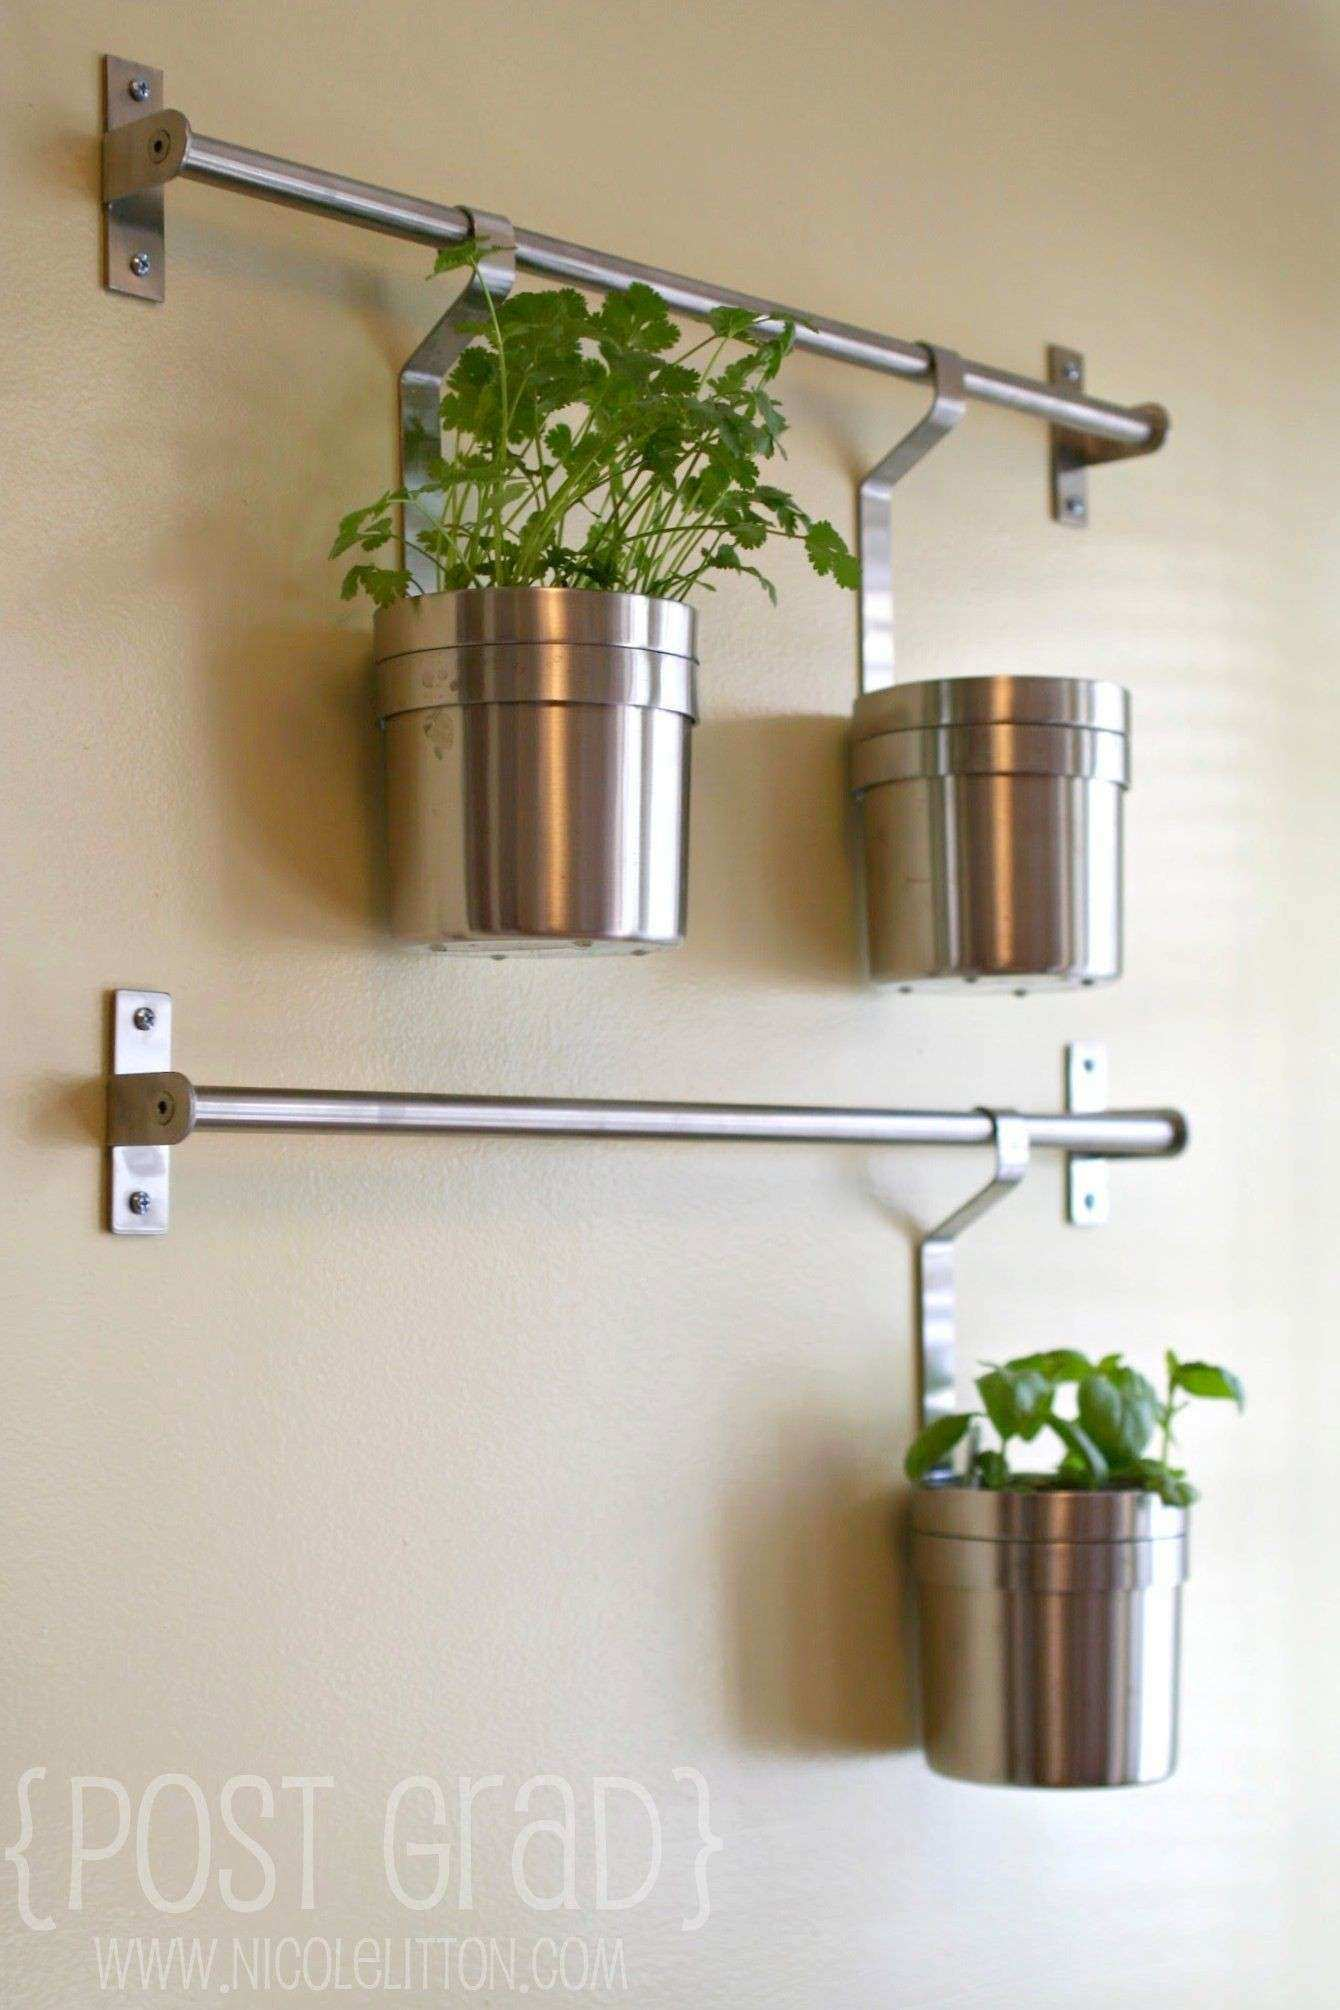 Hang plants in kitchen using IKEA GRUNDTAL Herb Wall